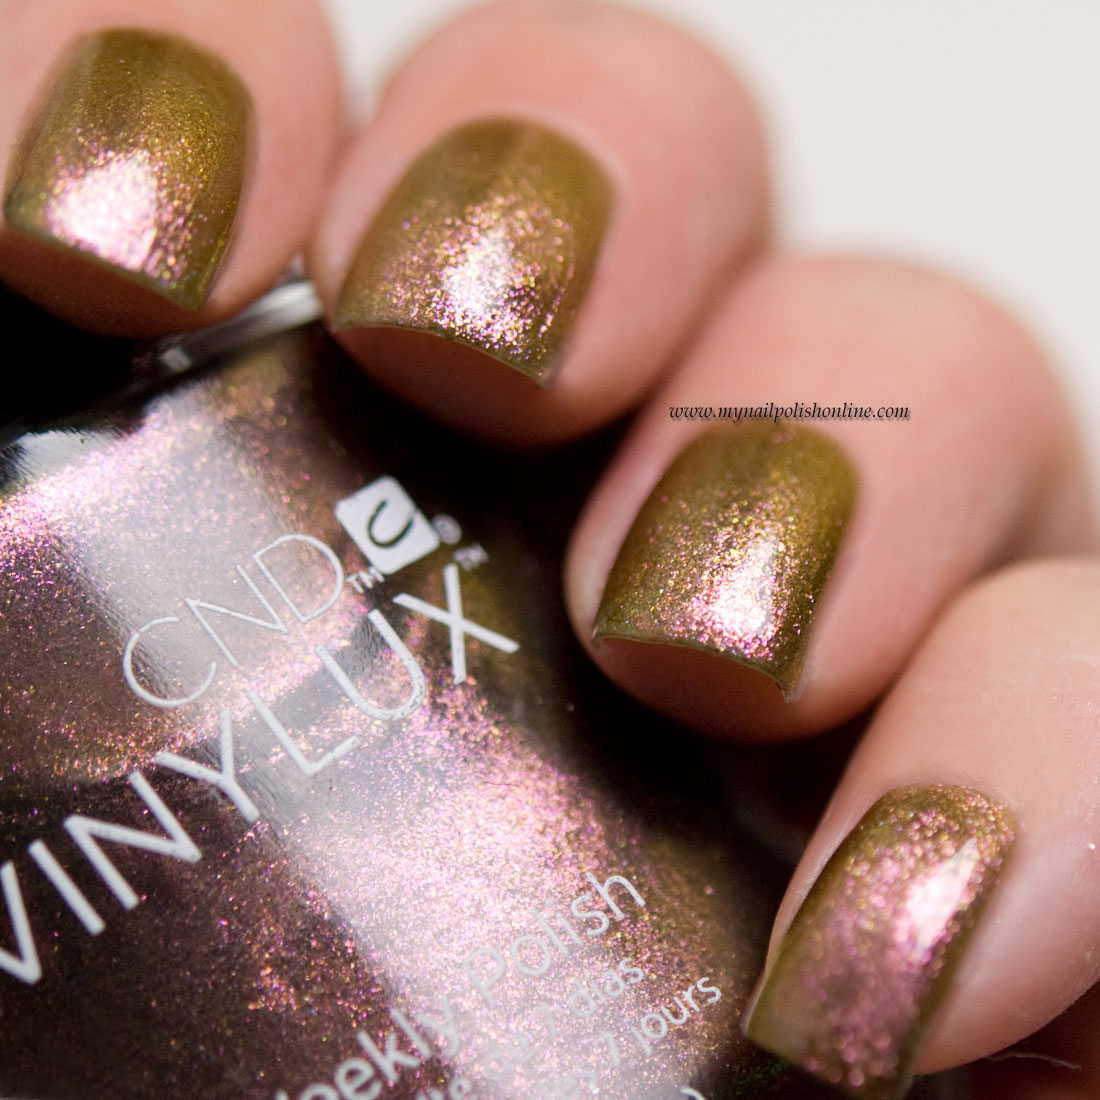 CND Vinylux - Hypnotic Dreams